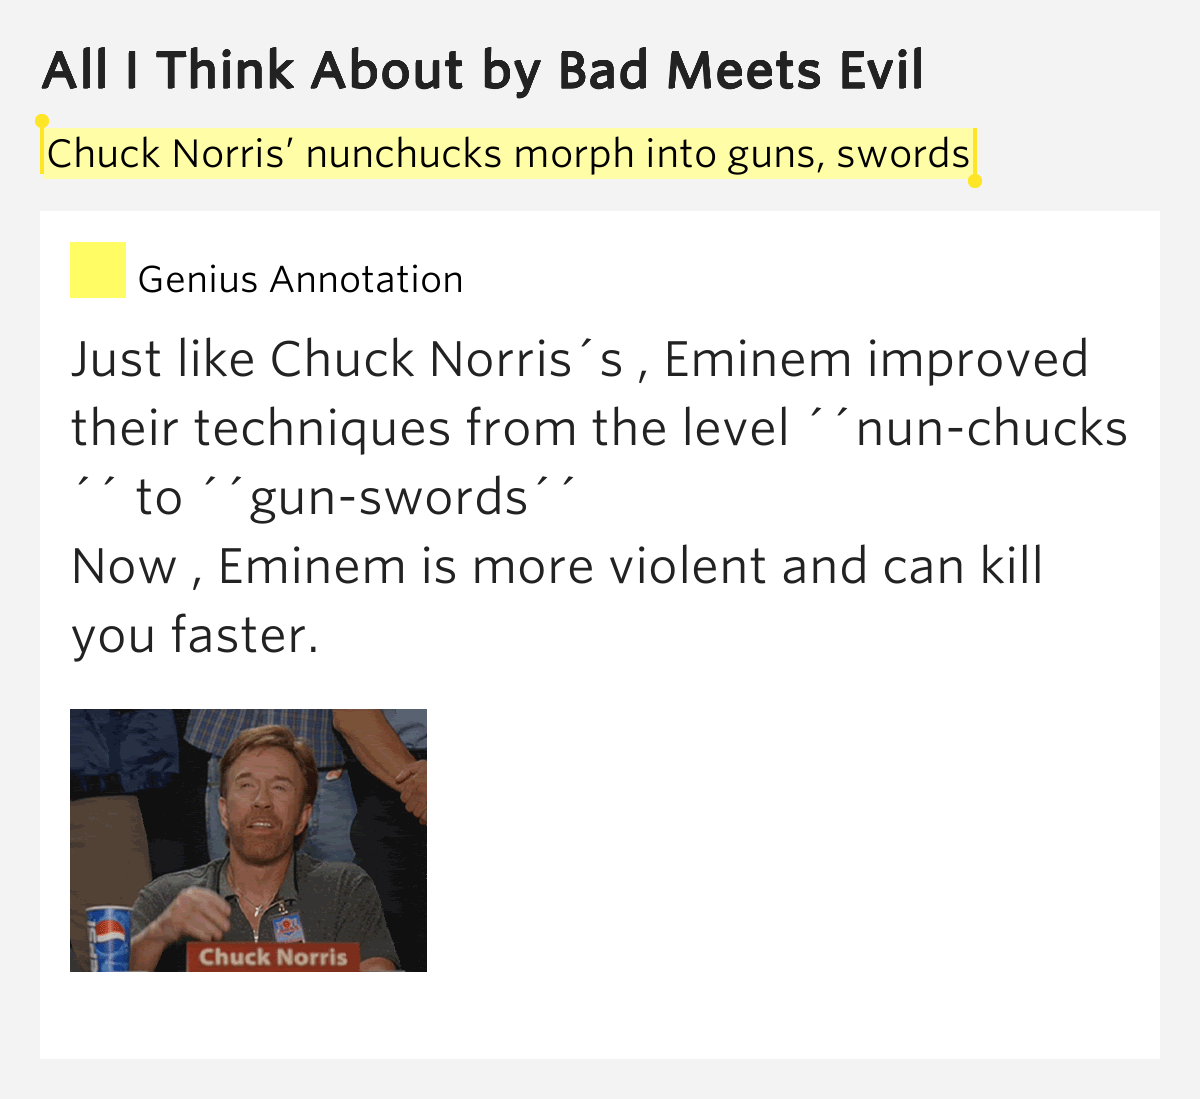 List of songs by Chuck Norris - songfacts.com